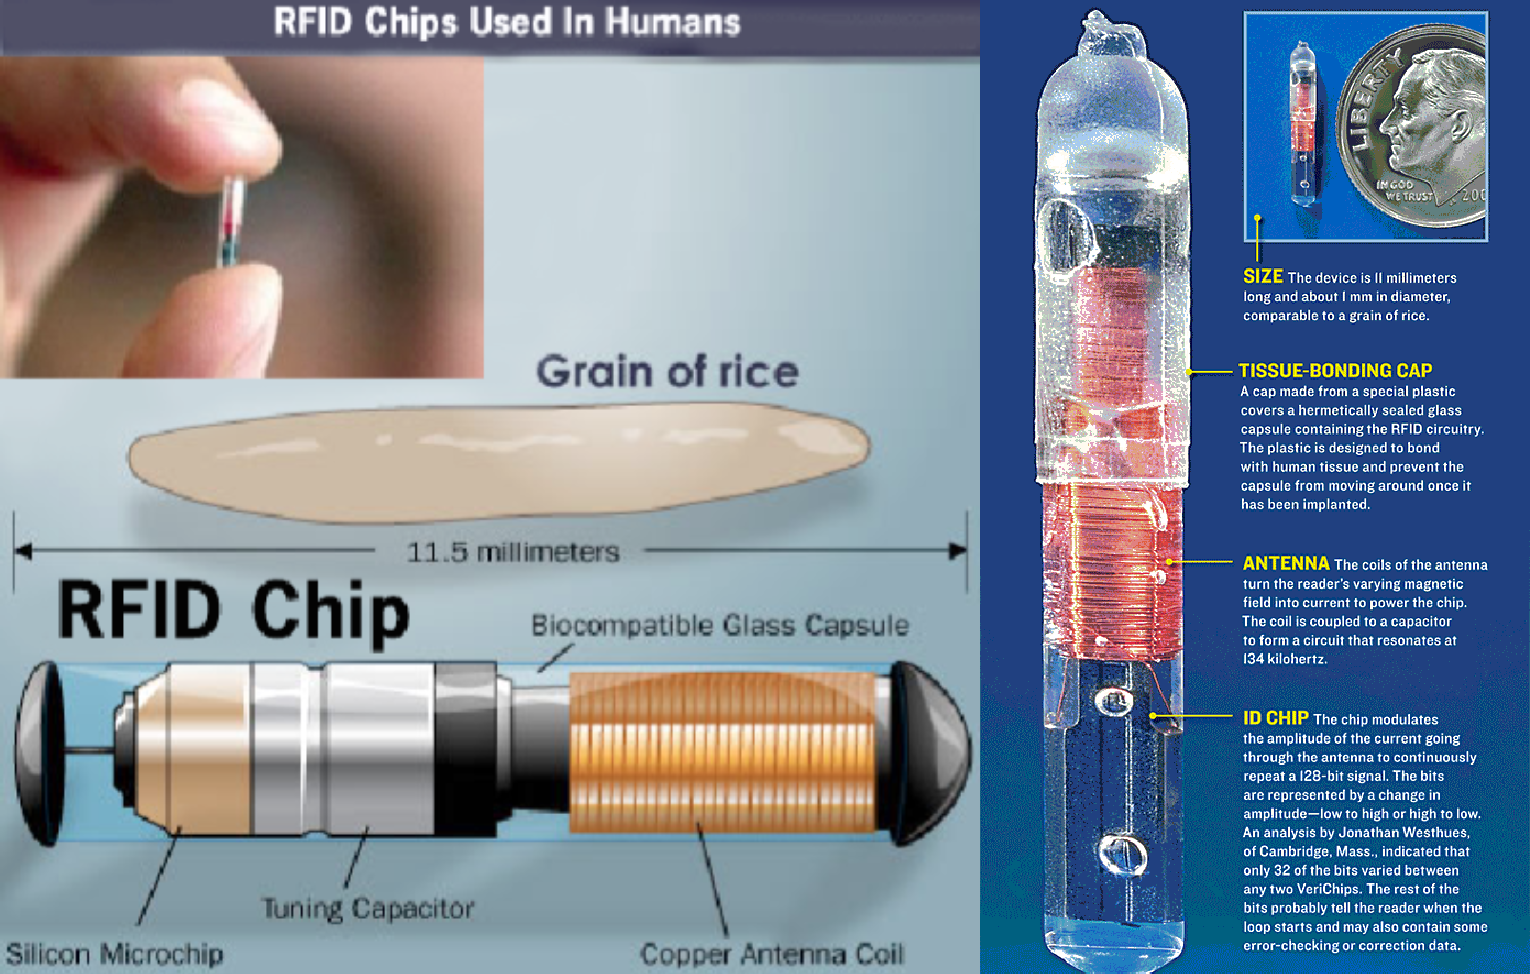 RFID chip | All the action from the casino floor: news, views and more